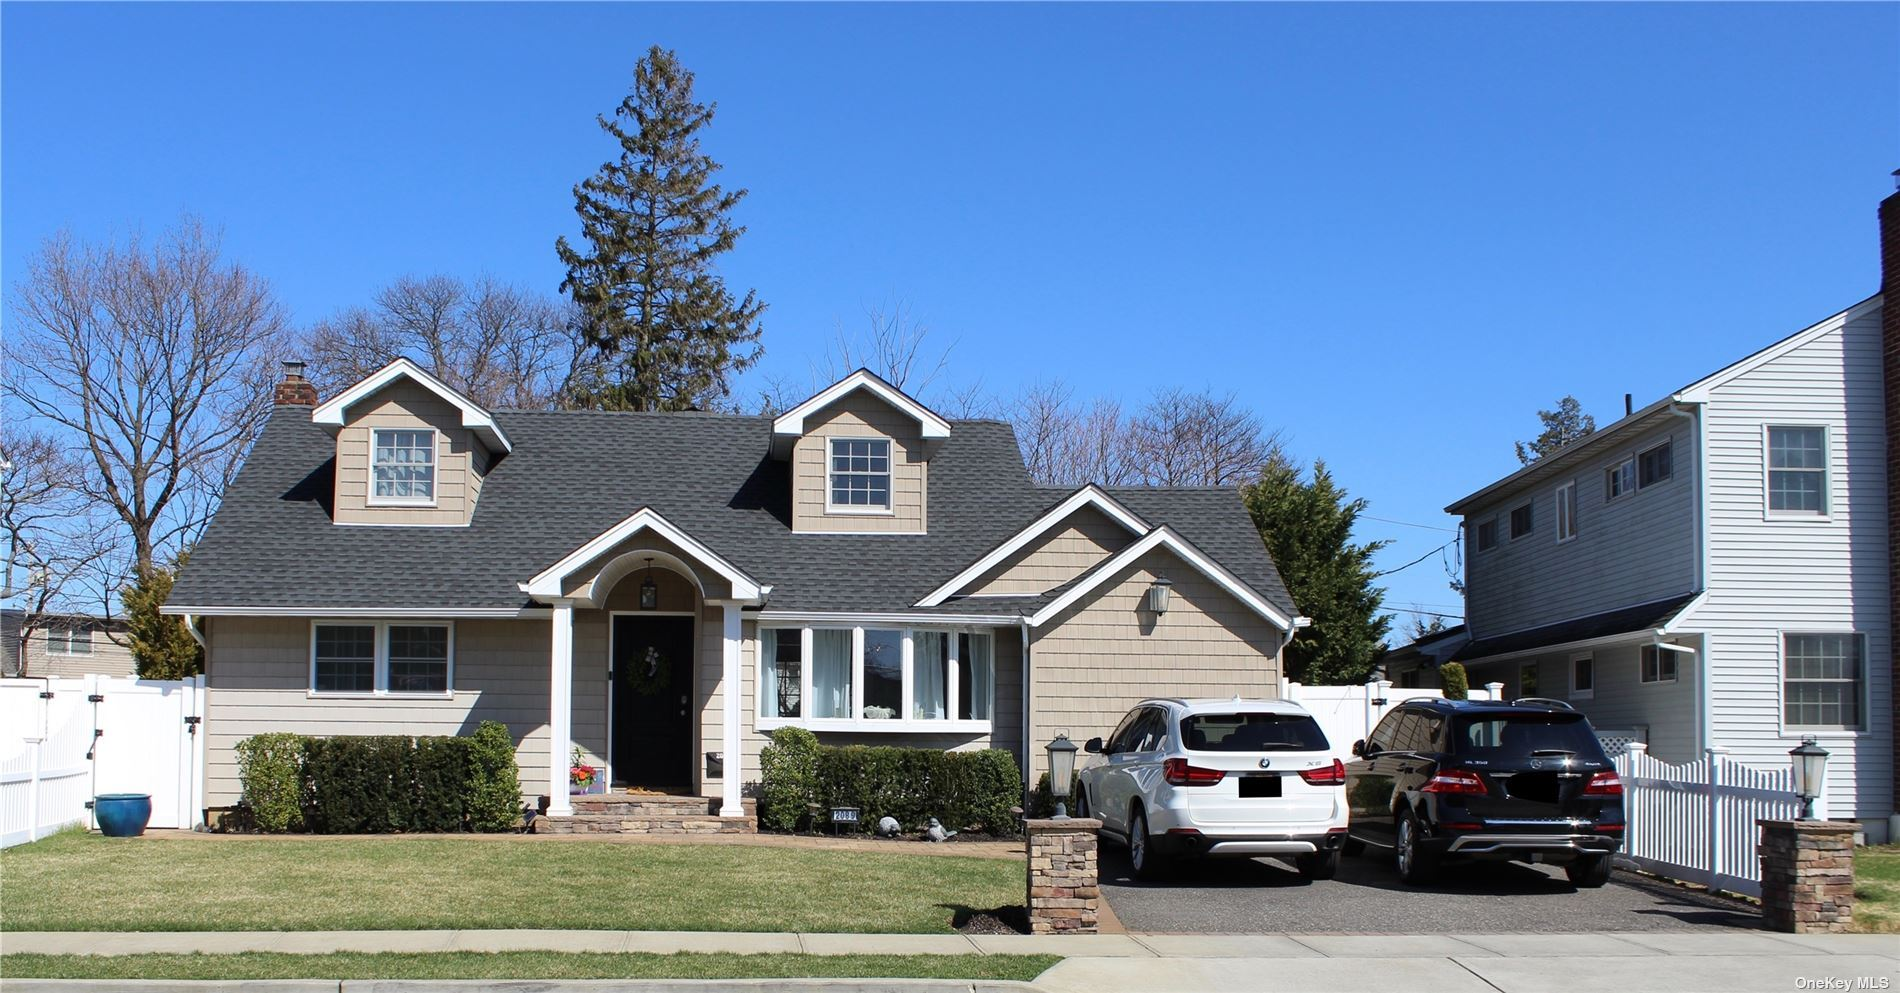 2089 Dale Place, Seaford, NY 11783 - MLS#: 3298894